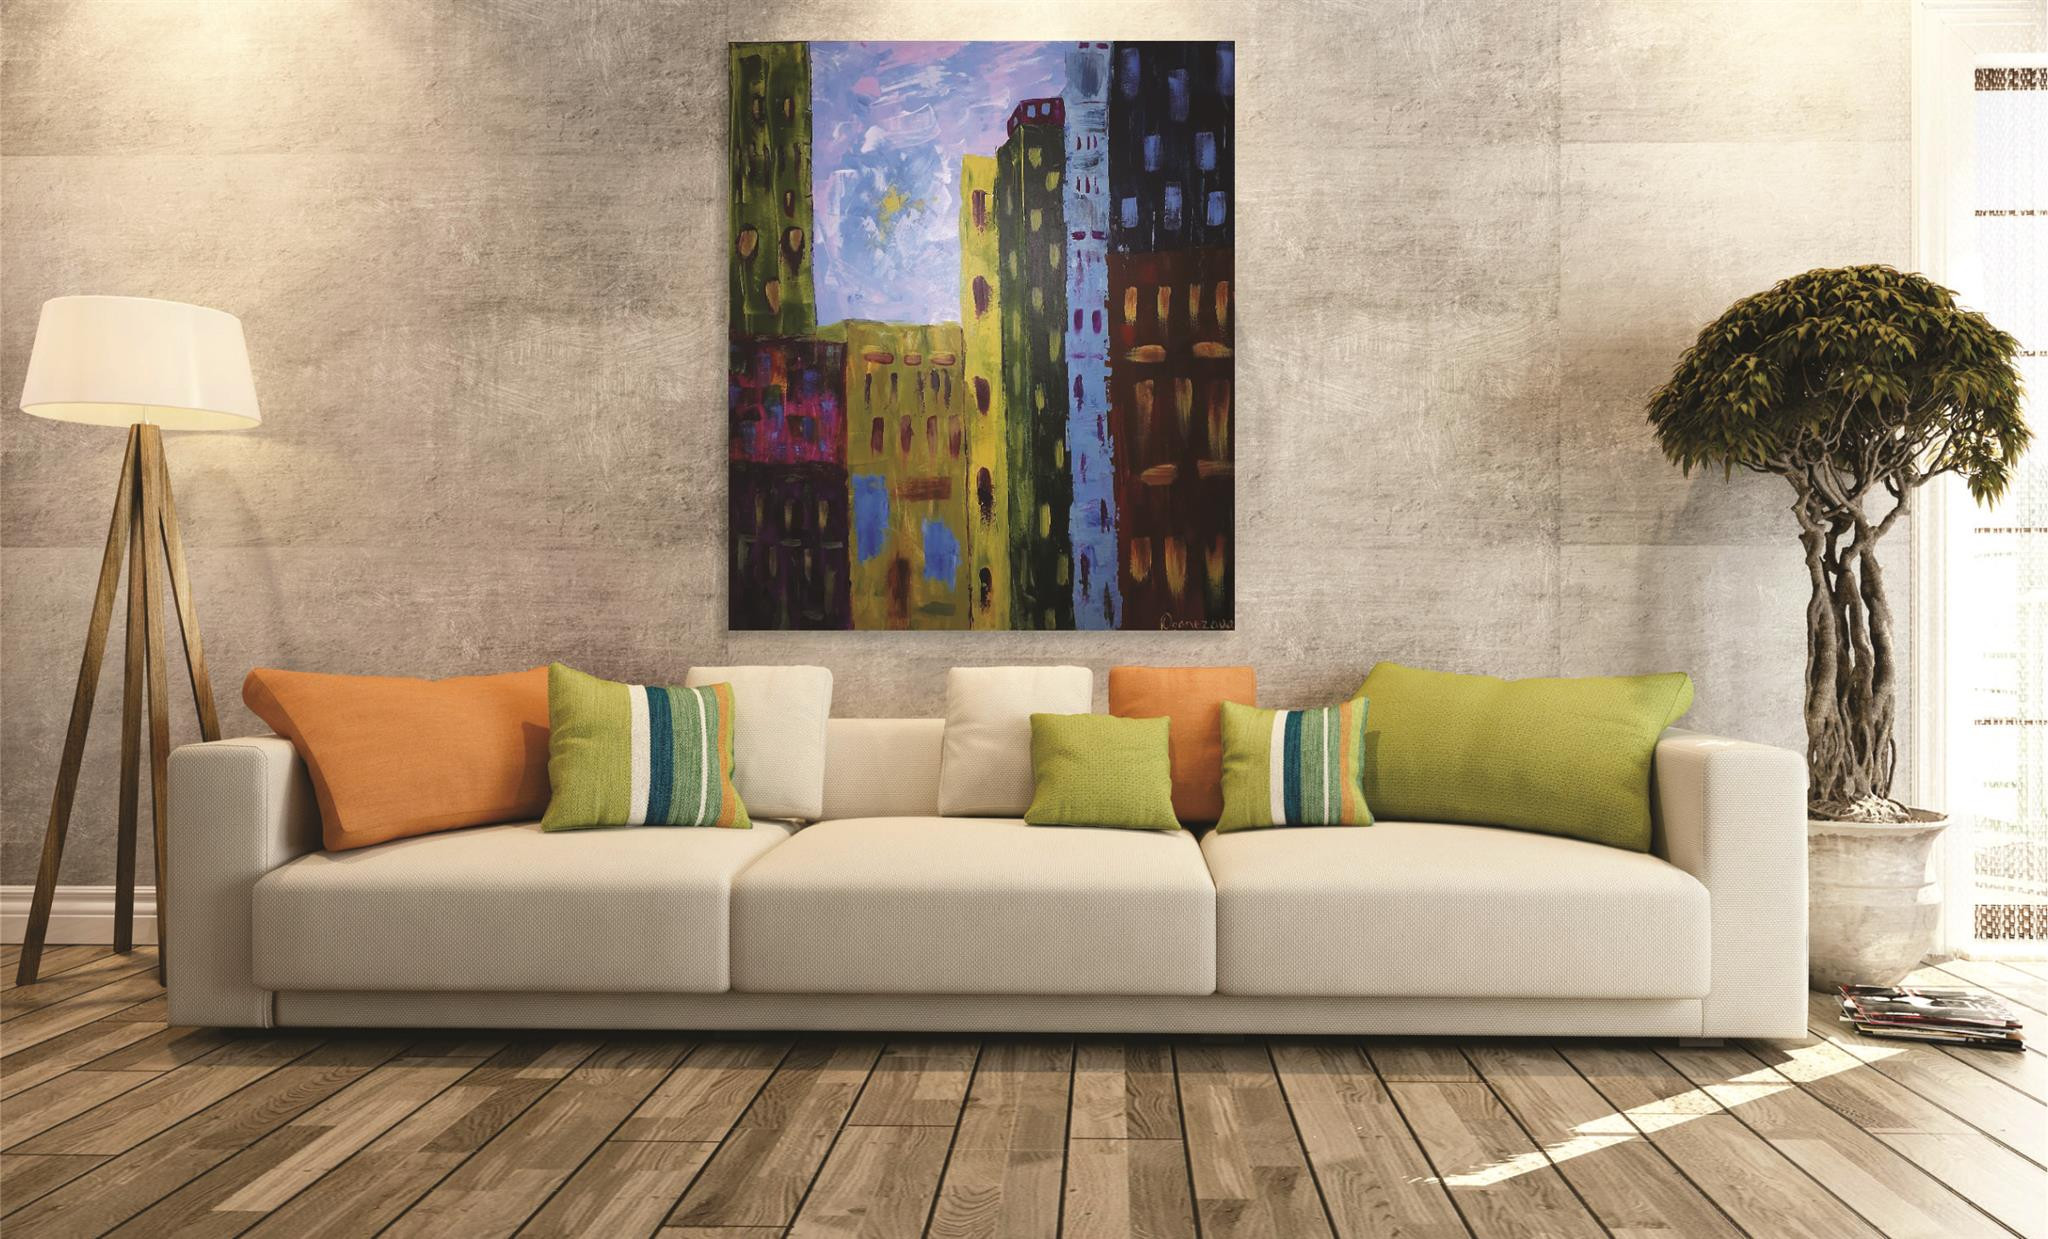 phillips hardwood floors omaha of colored city kristina oganezova art in colored city